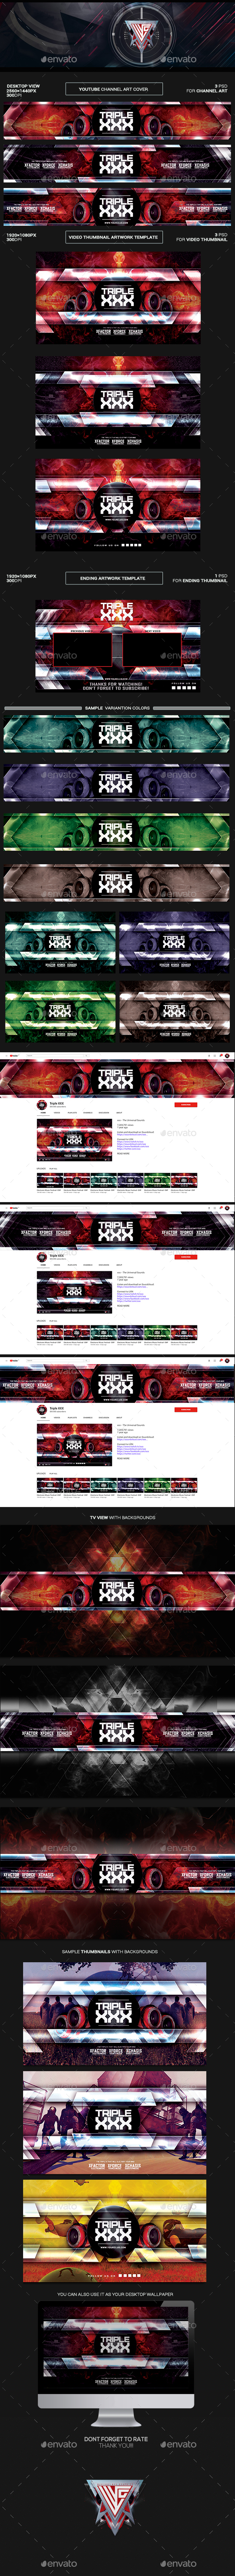 Triple XXX Youtube Channel Art/Video Thumbnail and Ending Video Template - YouTube Social Media